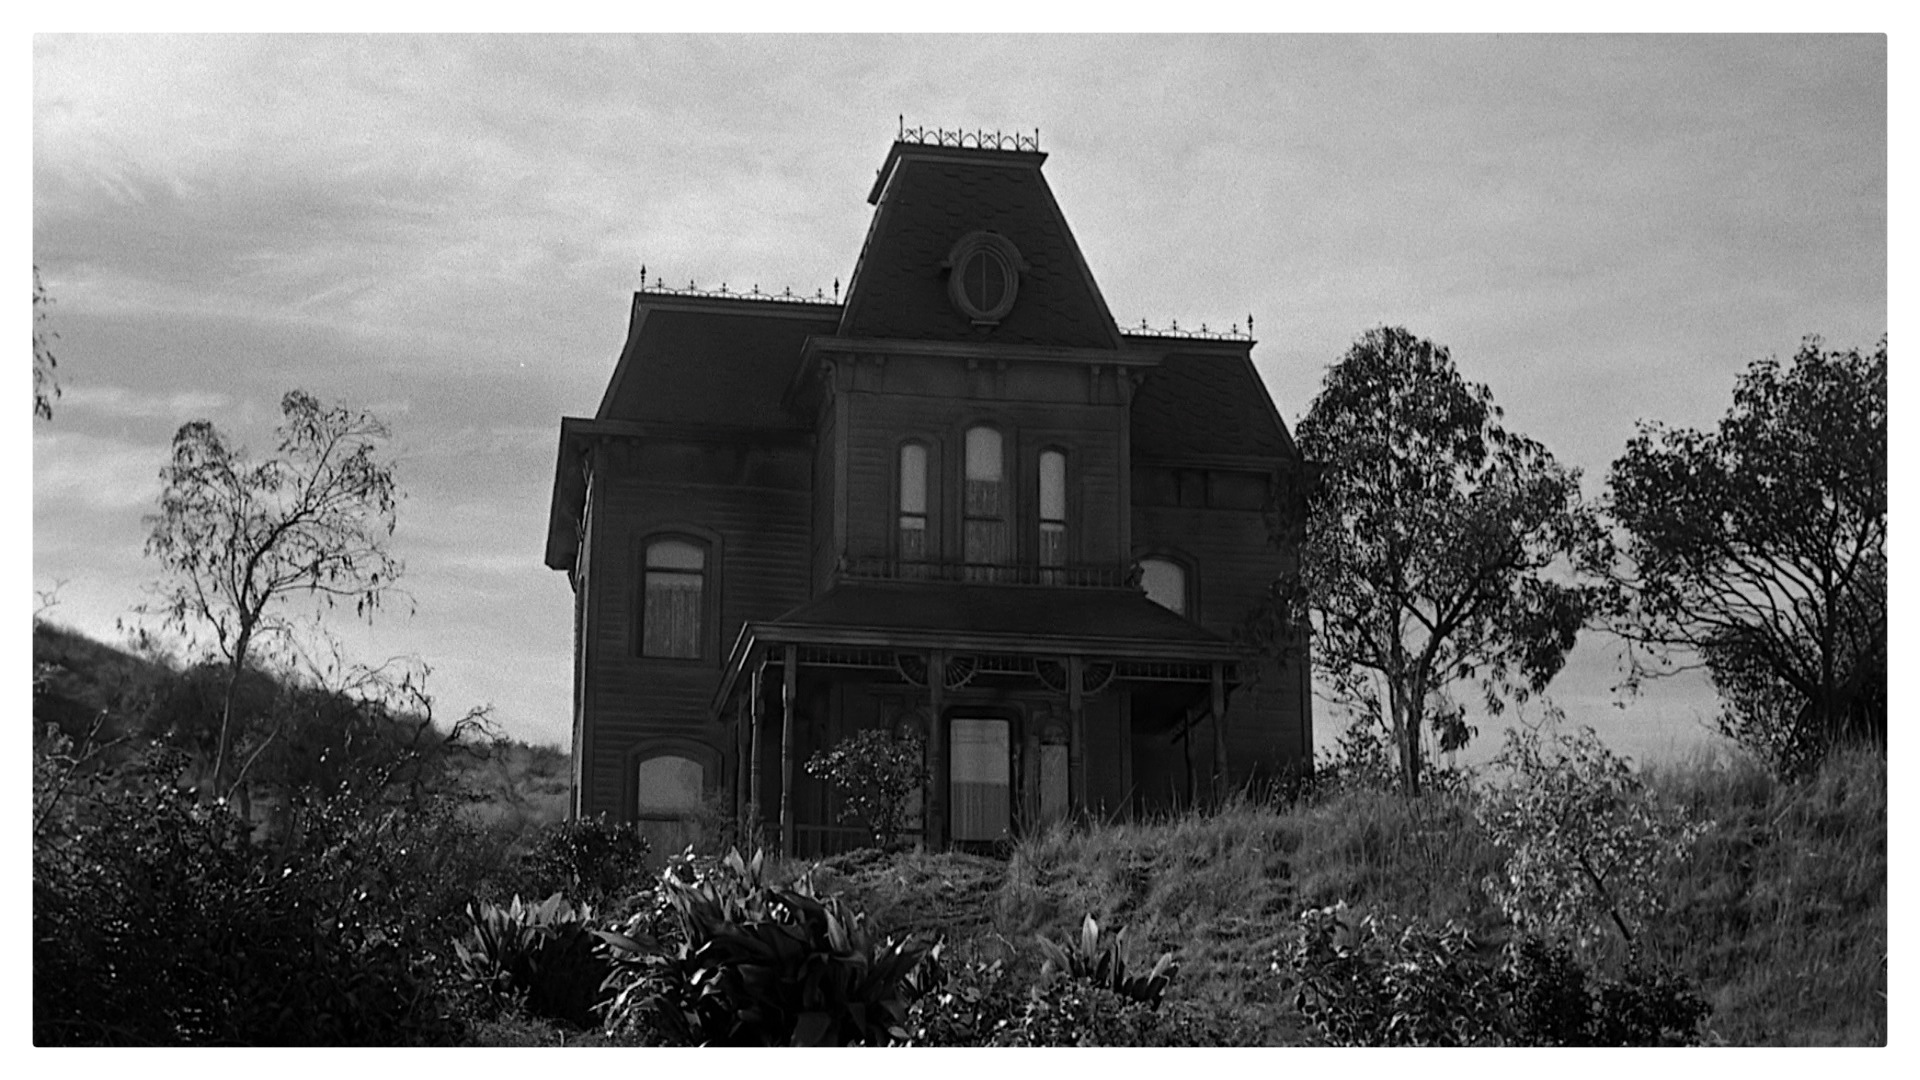 House from Psycho, 1960